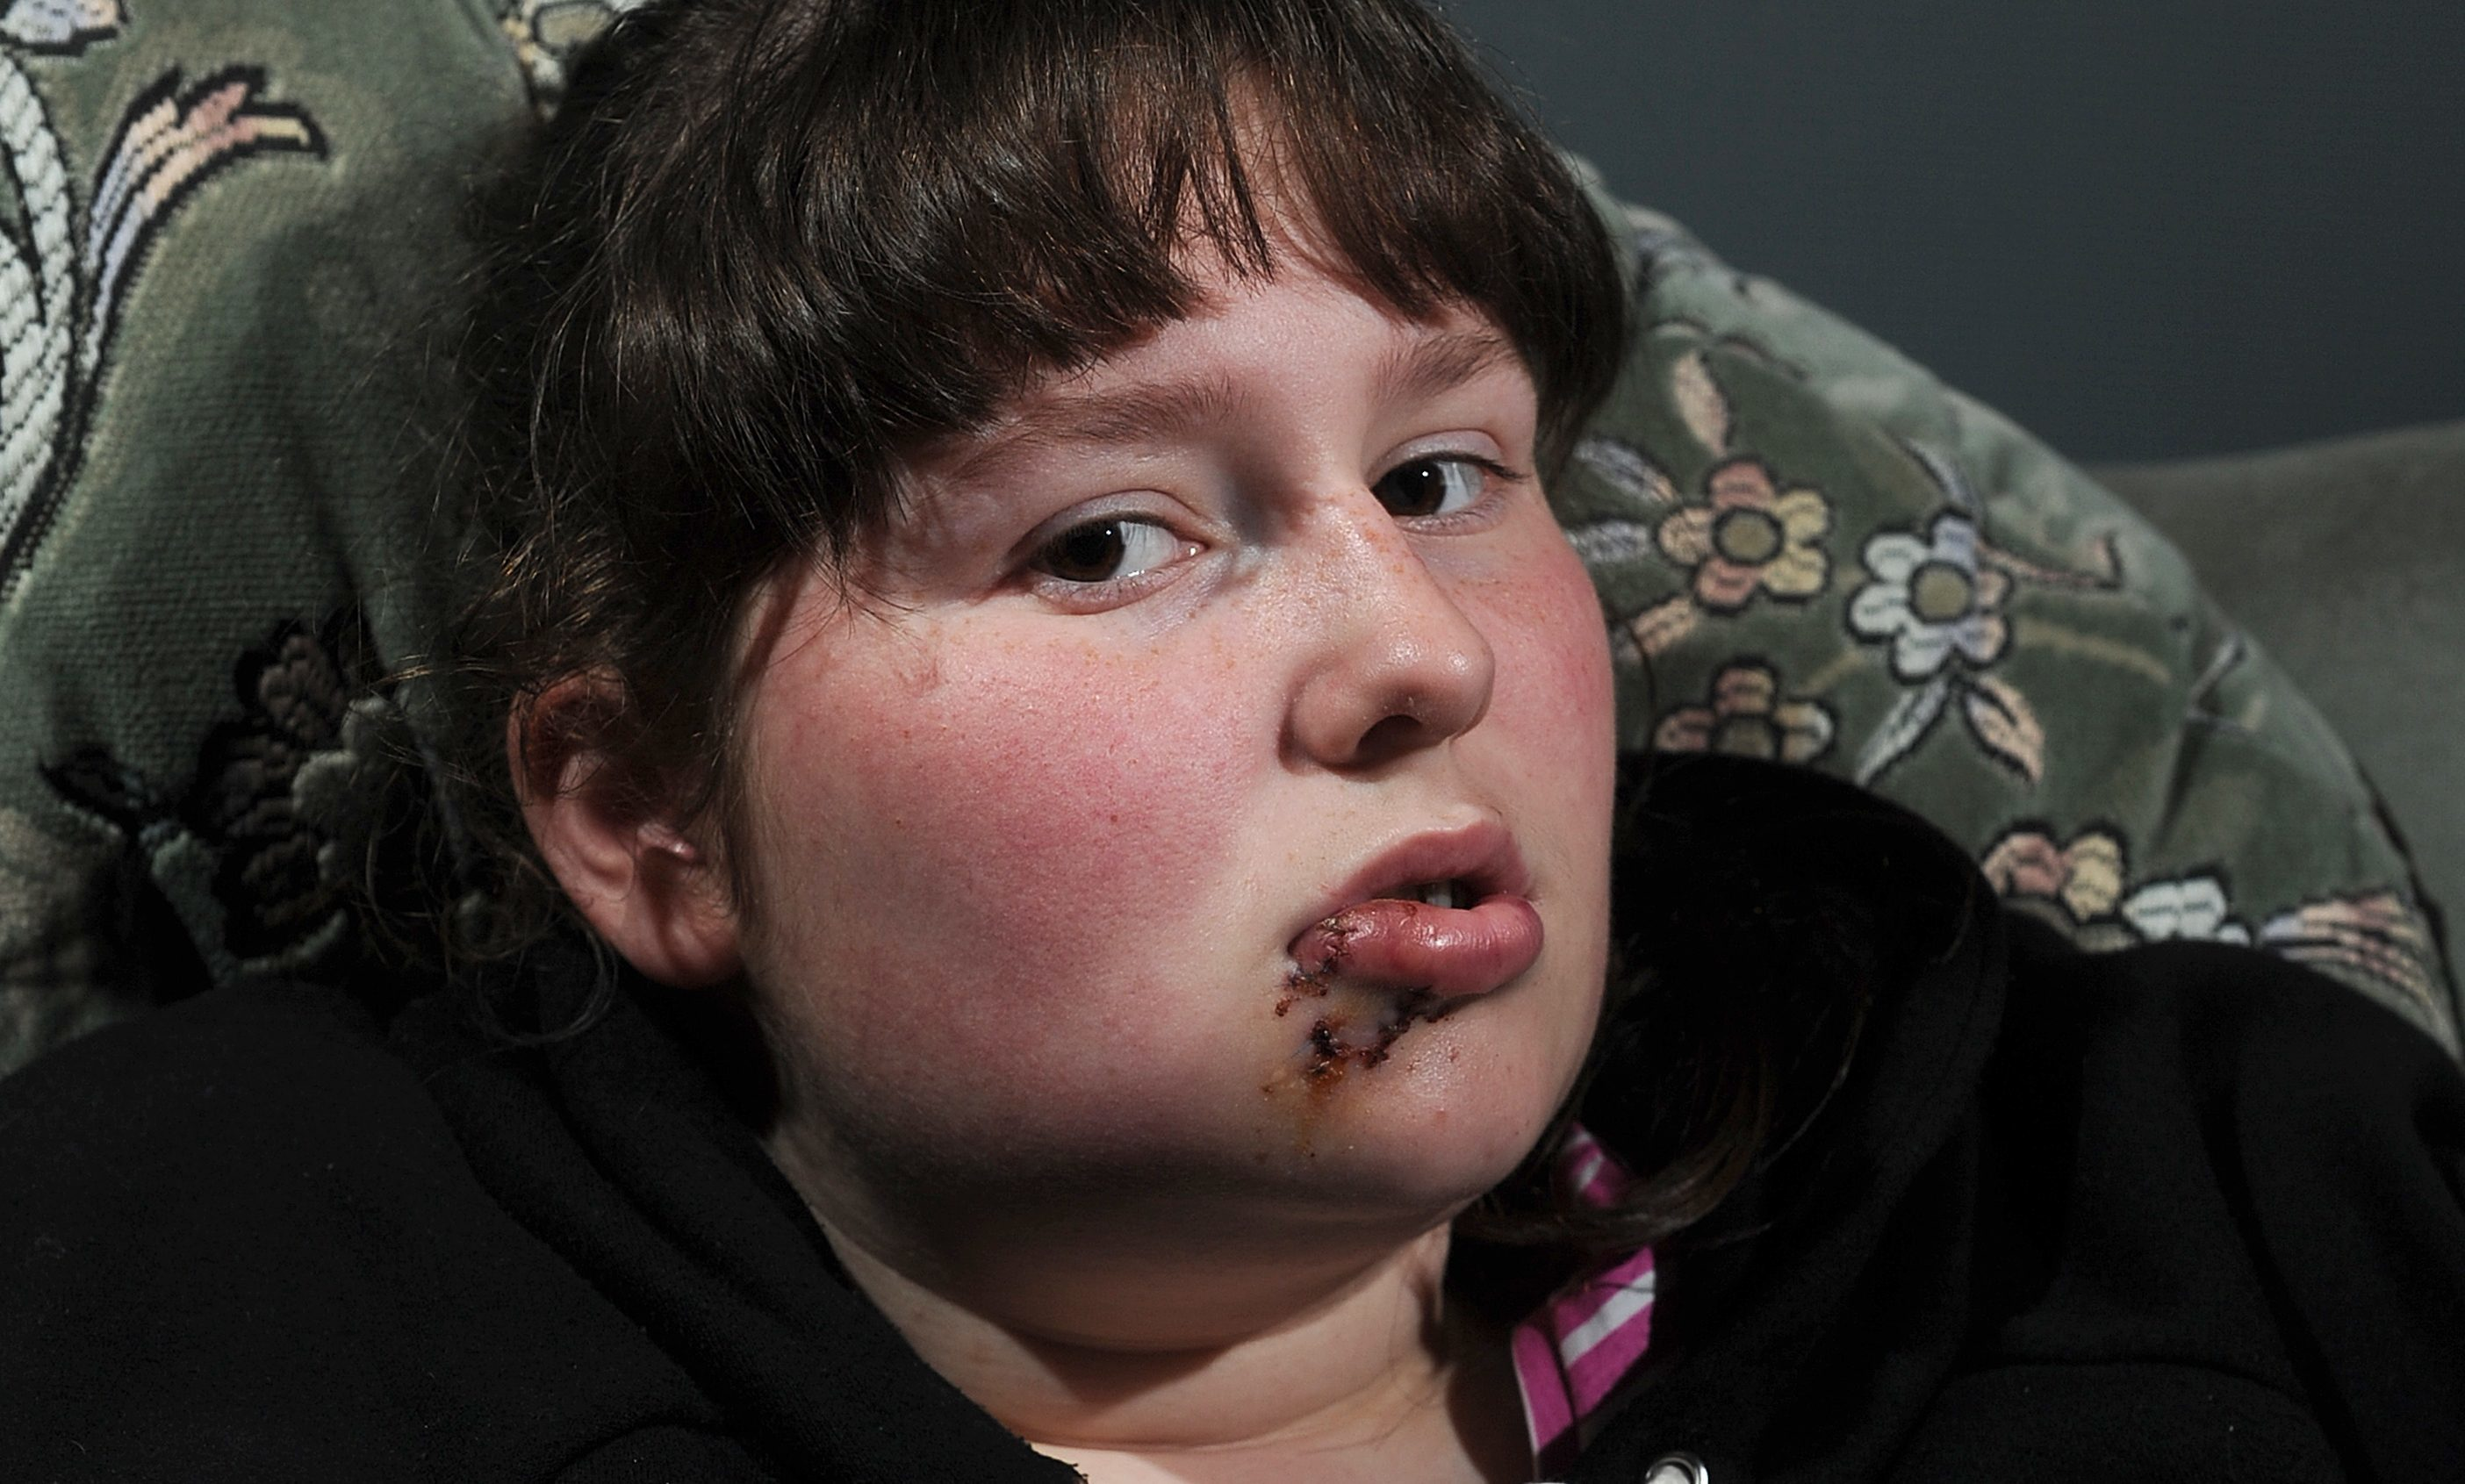 Caitlin Agnew was bitten in the face by a staffie and required surgery.